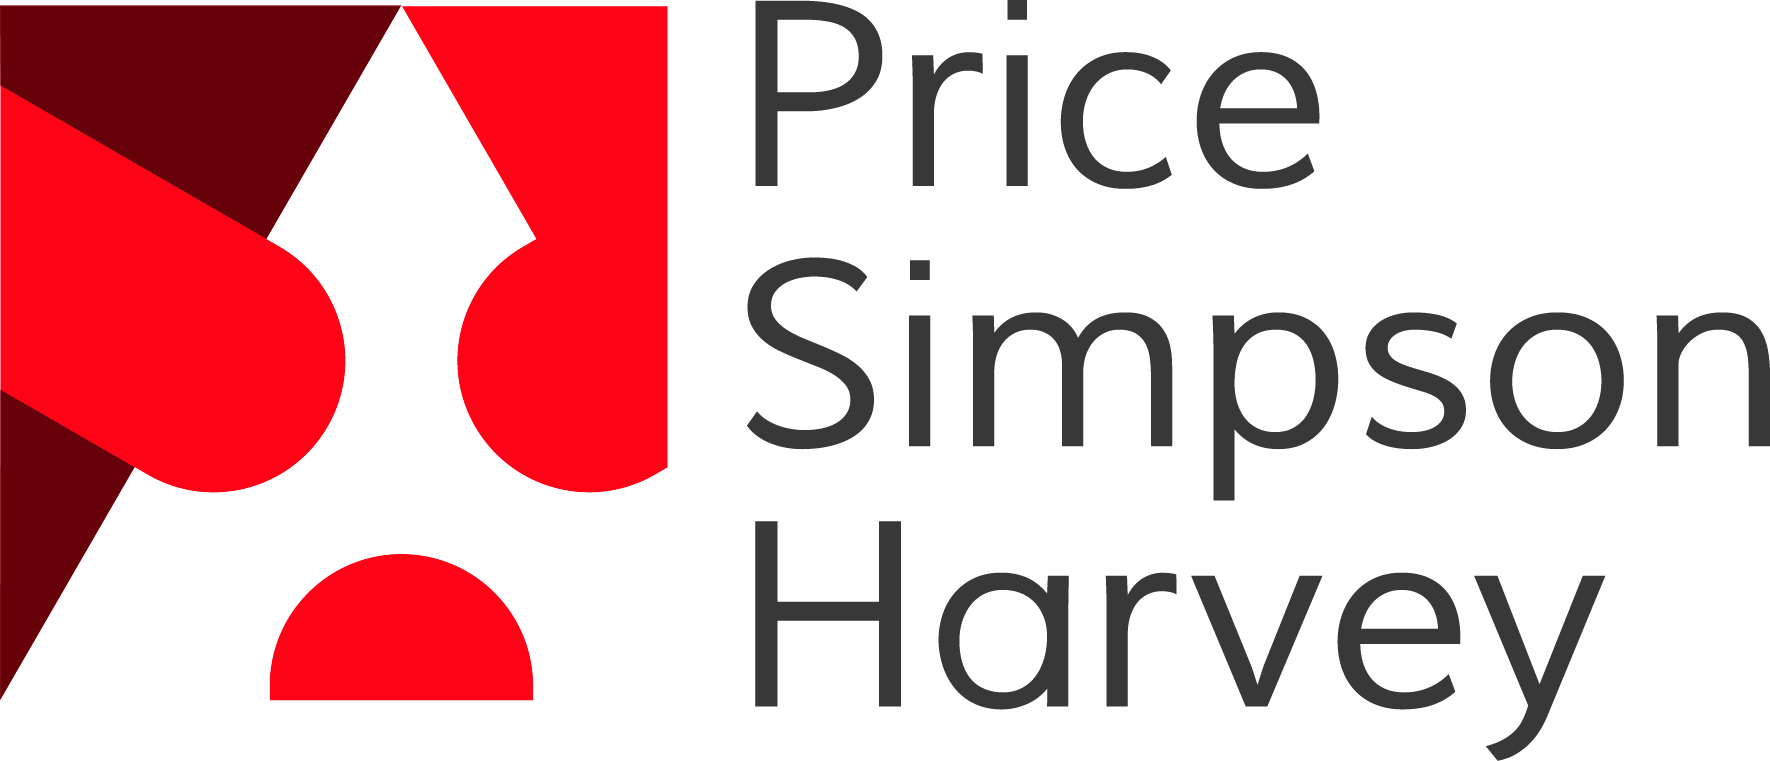 price simpson harvey logo